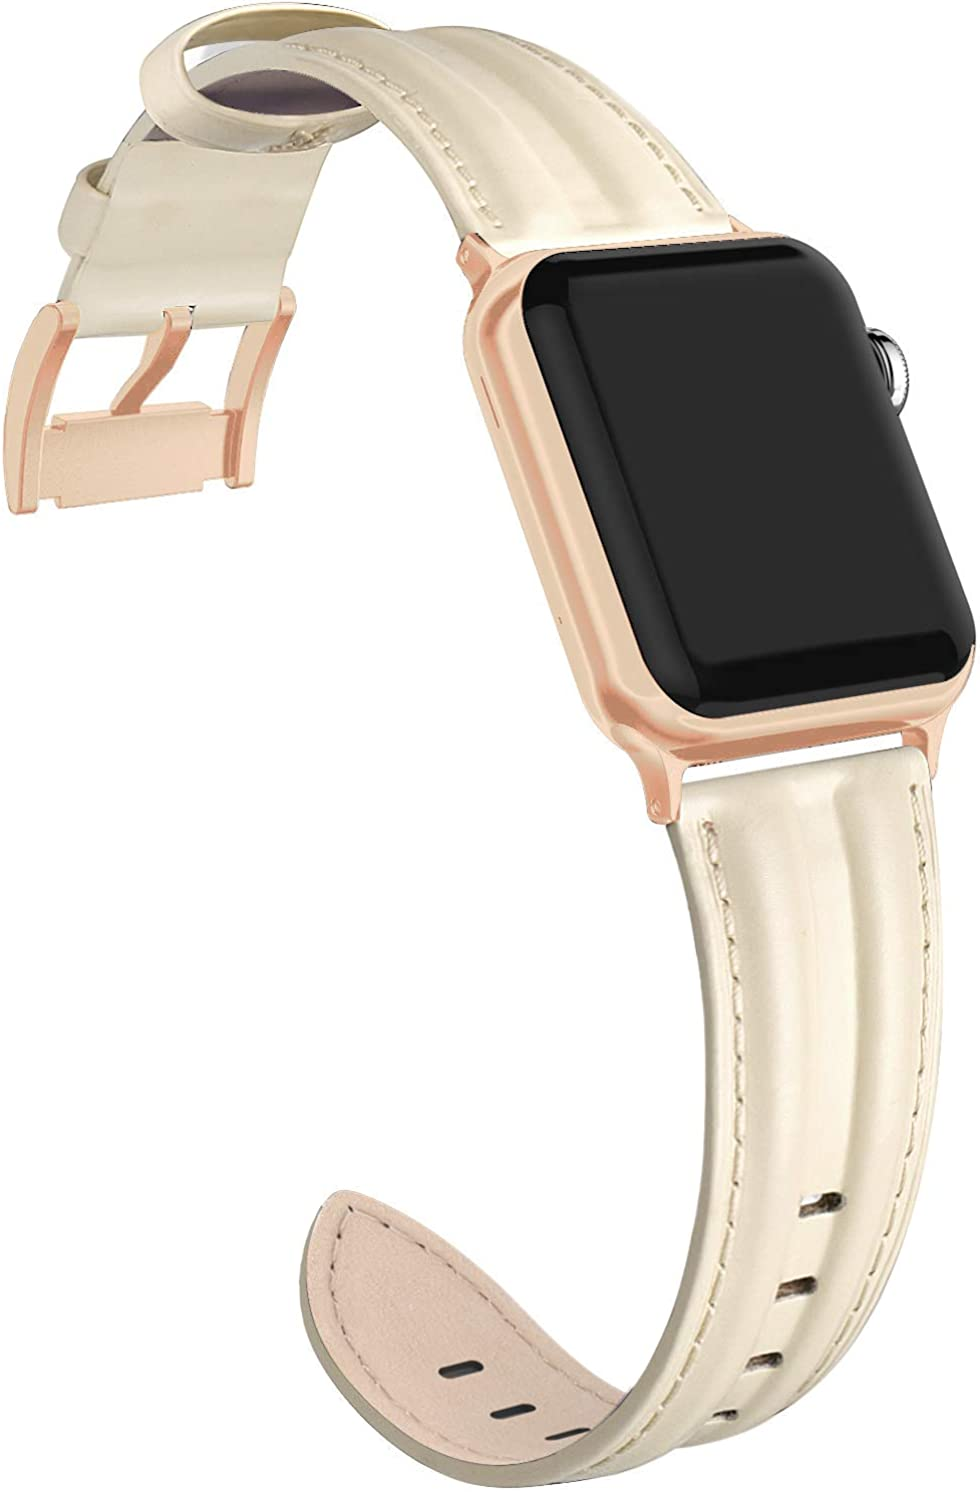 SWEES Leather Band Compatible with iWatch 38mm 40mm, Genuine Leather Shiny Bling Strap Compatible iWatch Series 5 Series 4 Series 3 Series 2 Series 1, Sports & Edition Women,Rose Gold, Black